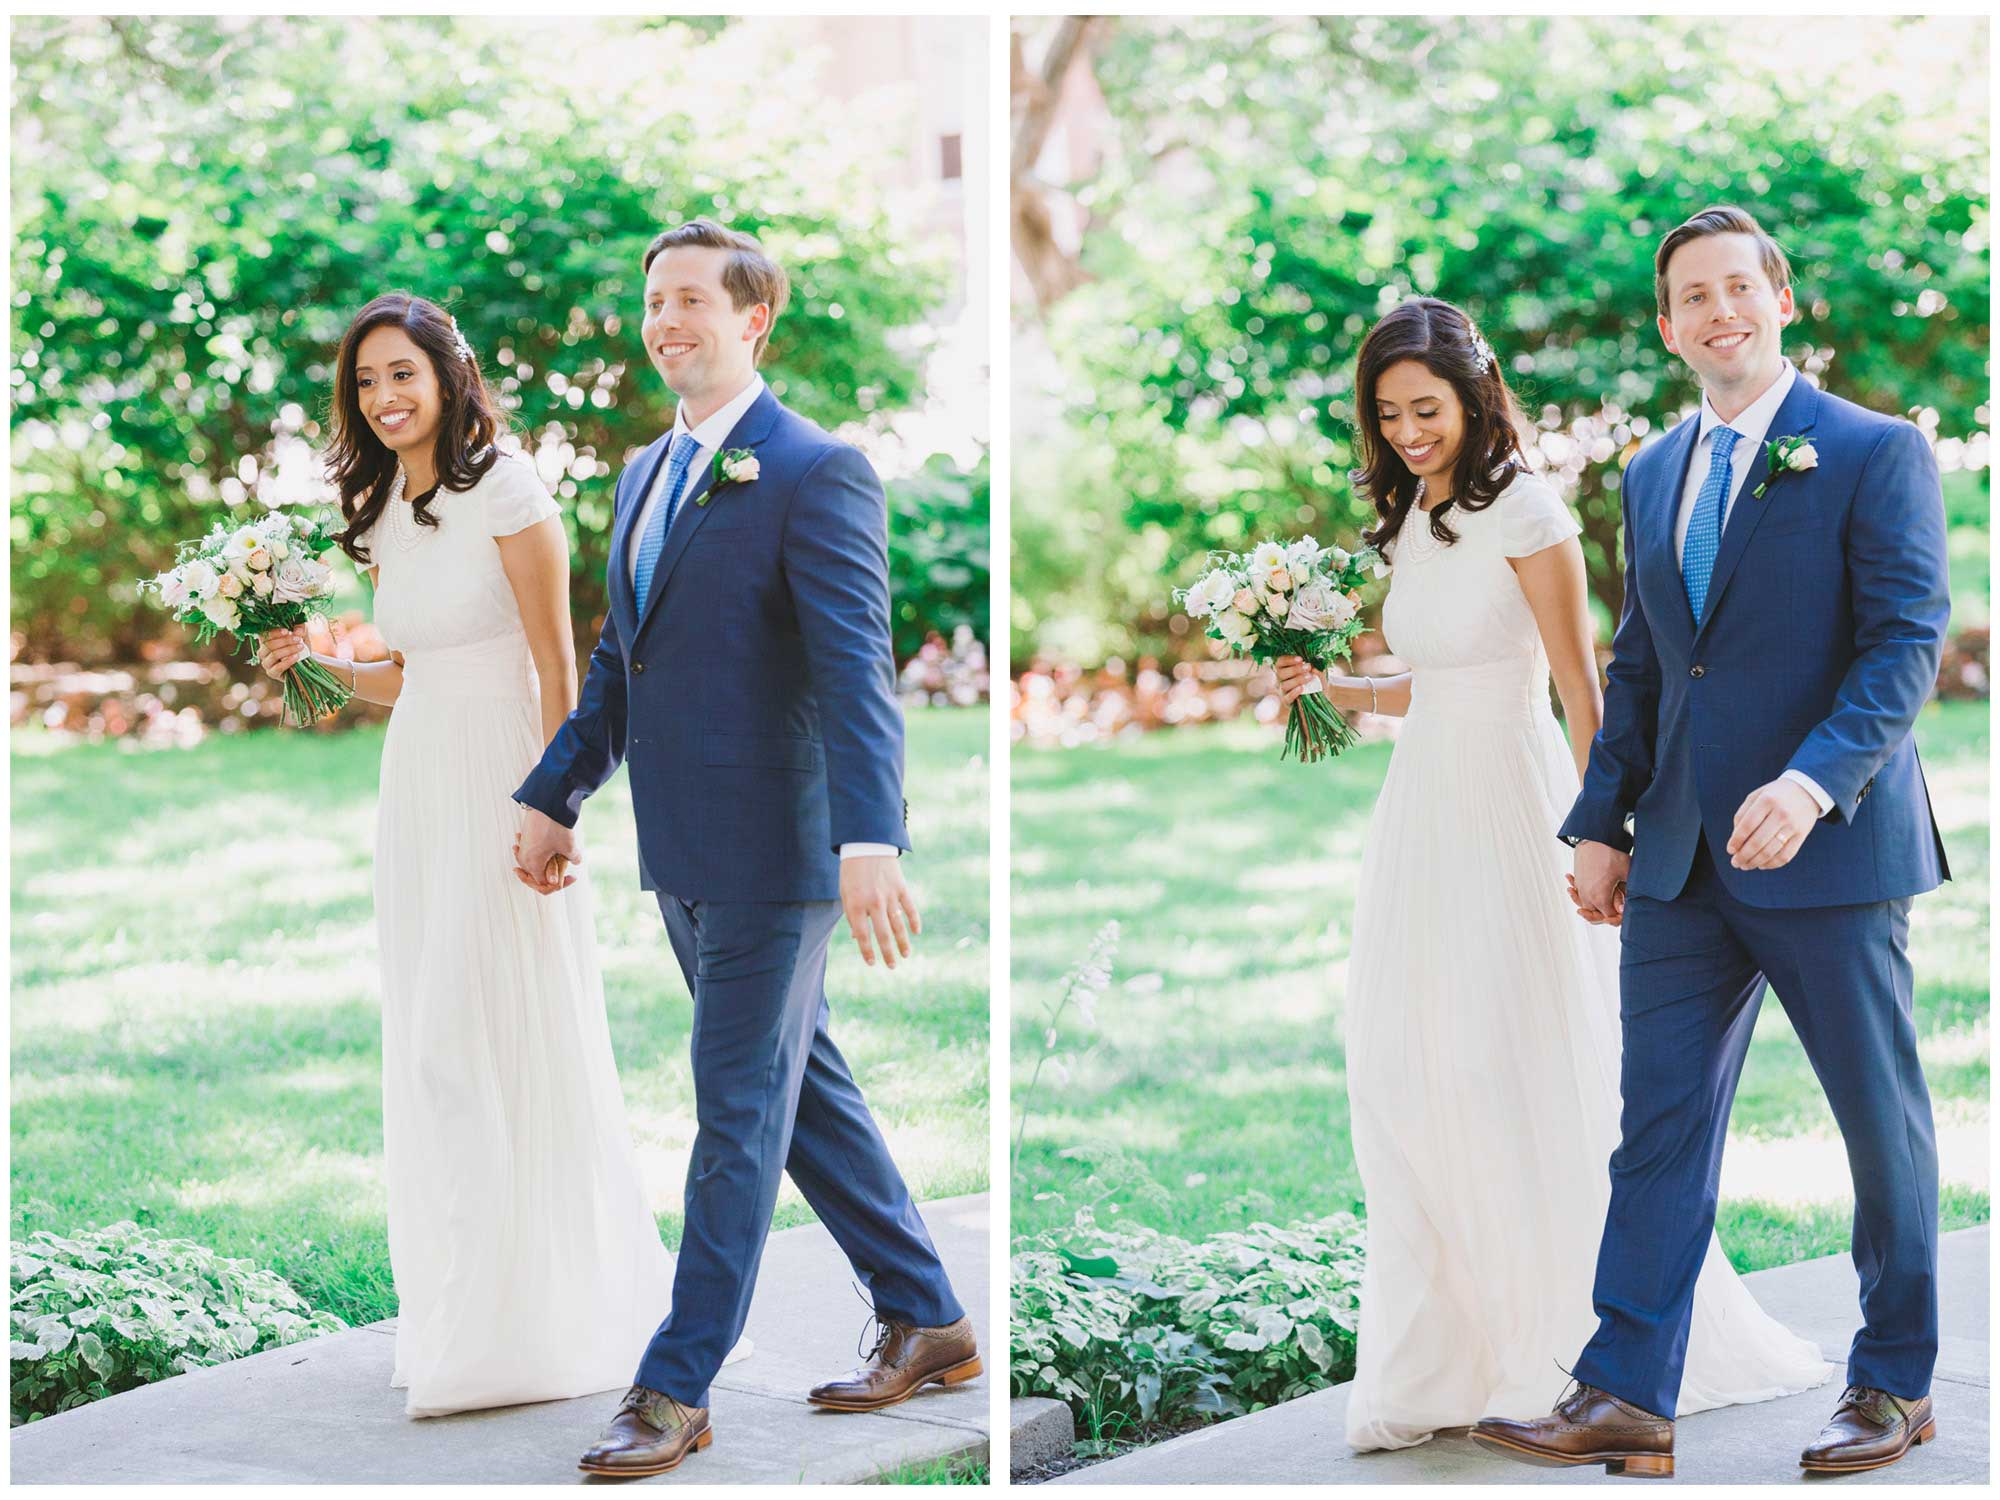 Bride and groom photos at Osgoode Hall